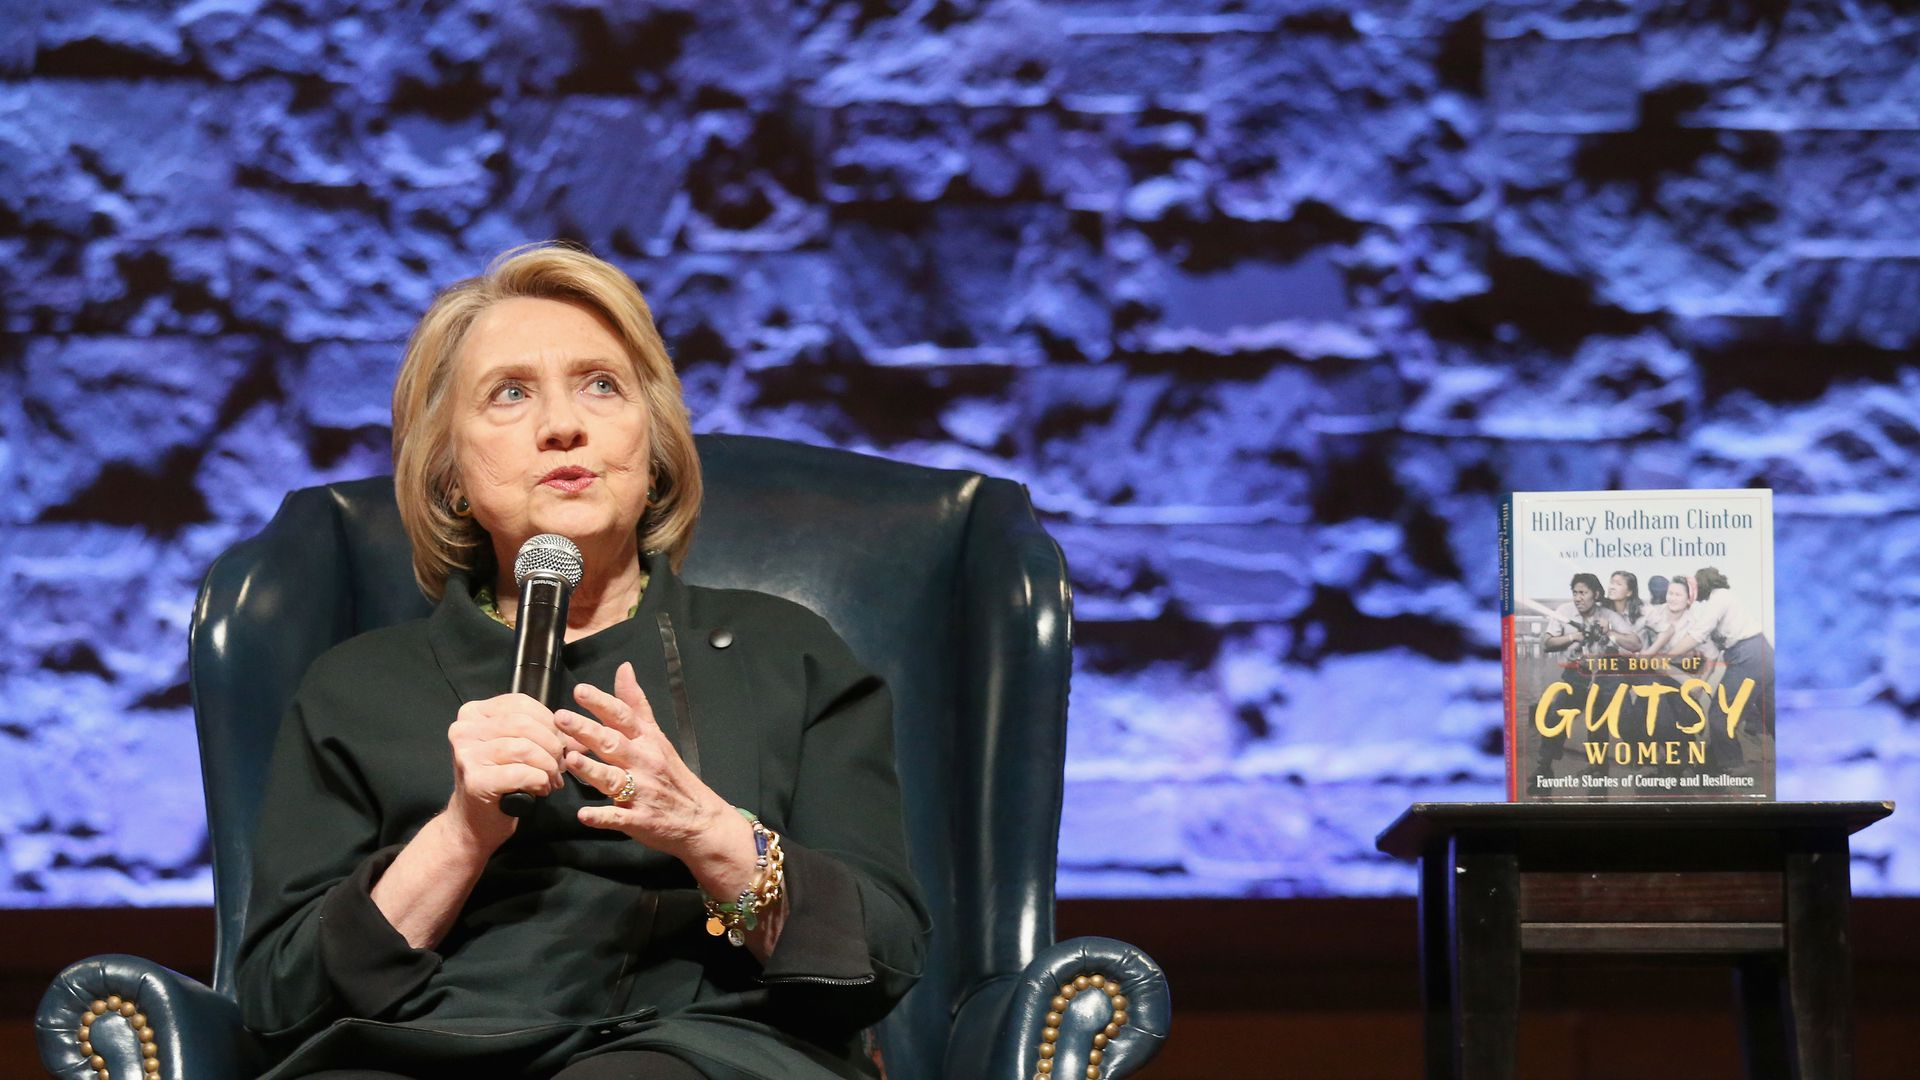 Hillary Clinton: Democrats must pick a candidate capable of winning the Electoral College